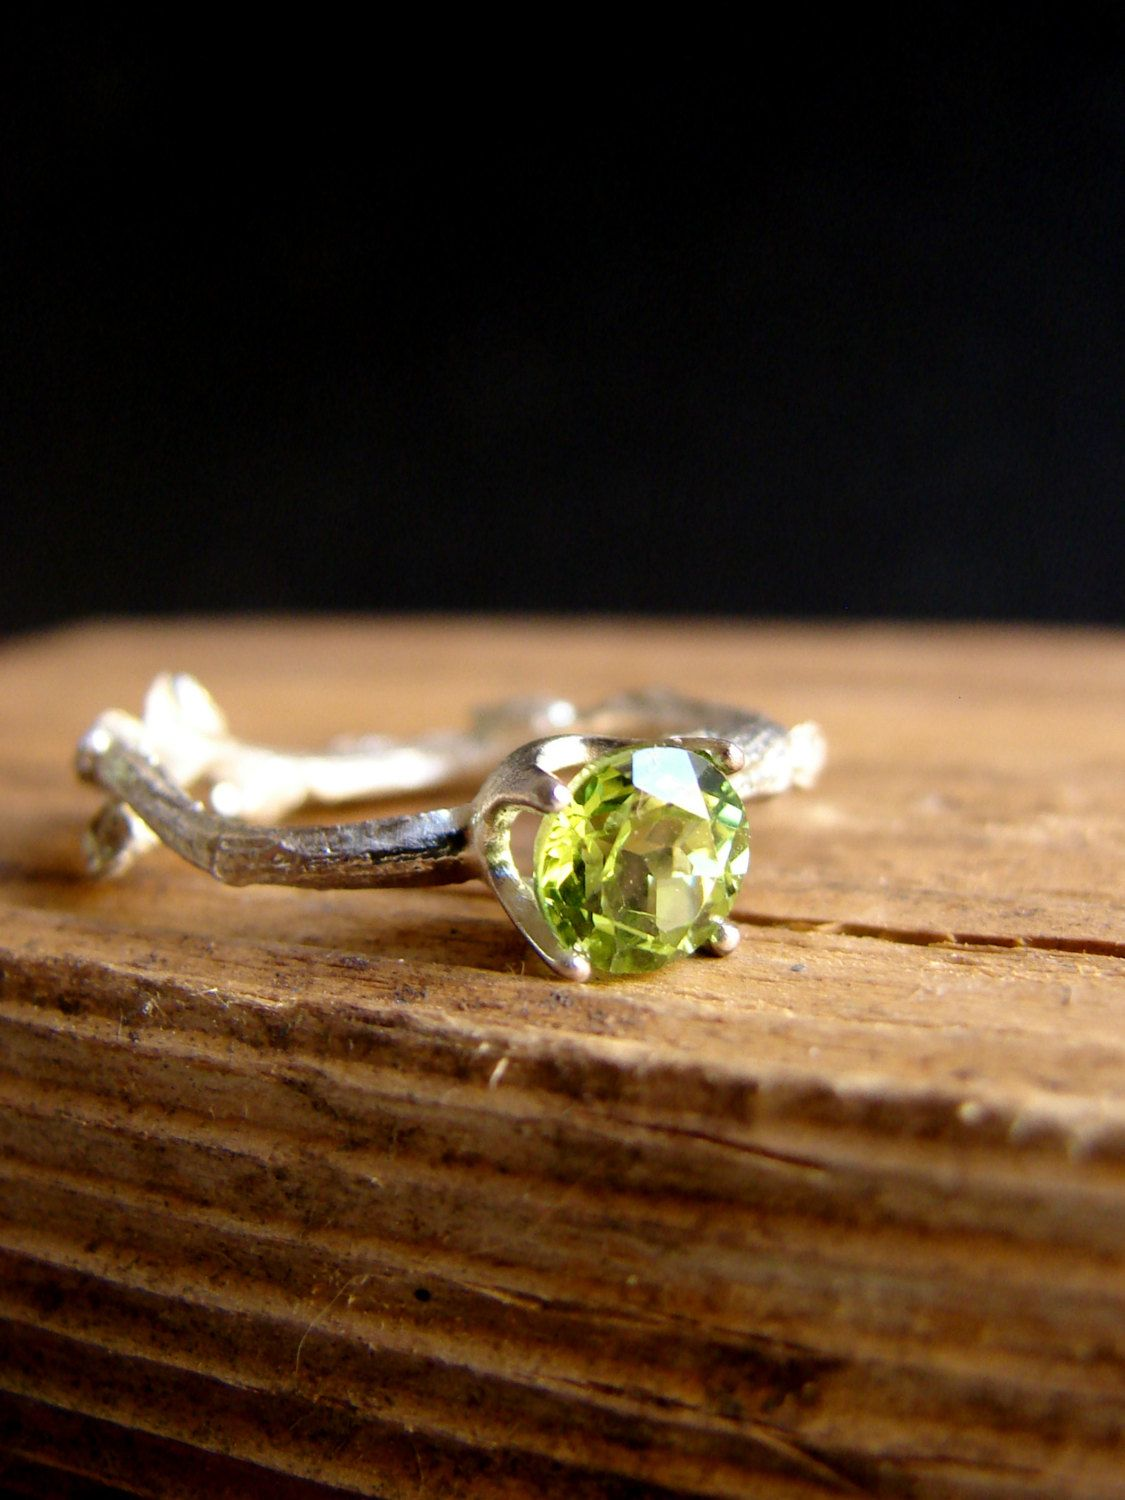 it k images gold made high on with stamp rings white finish peridot is make antique polished august best birthstone new diamond and rhodium brand this pinterest plating ring has a solid dazzling leo to its of authenticated